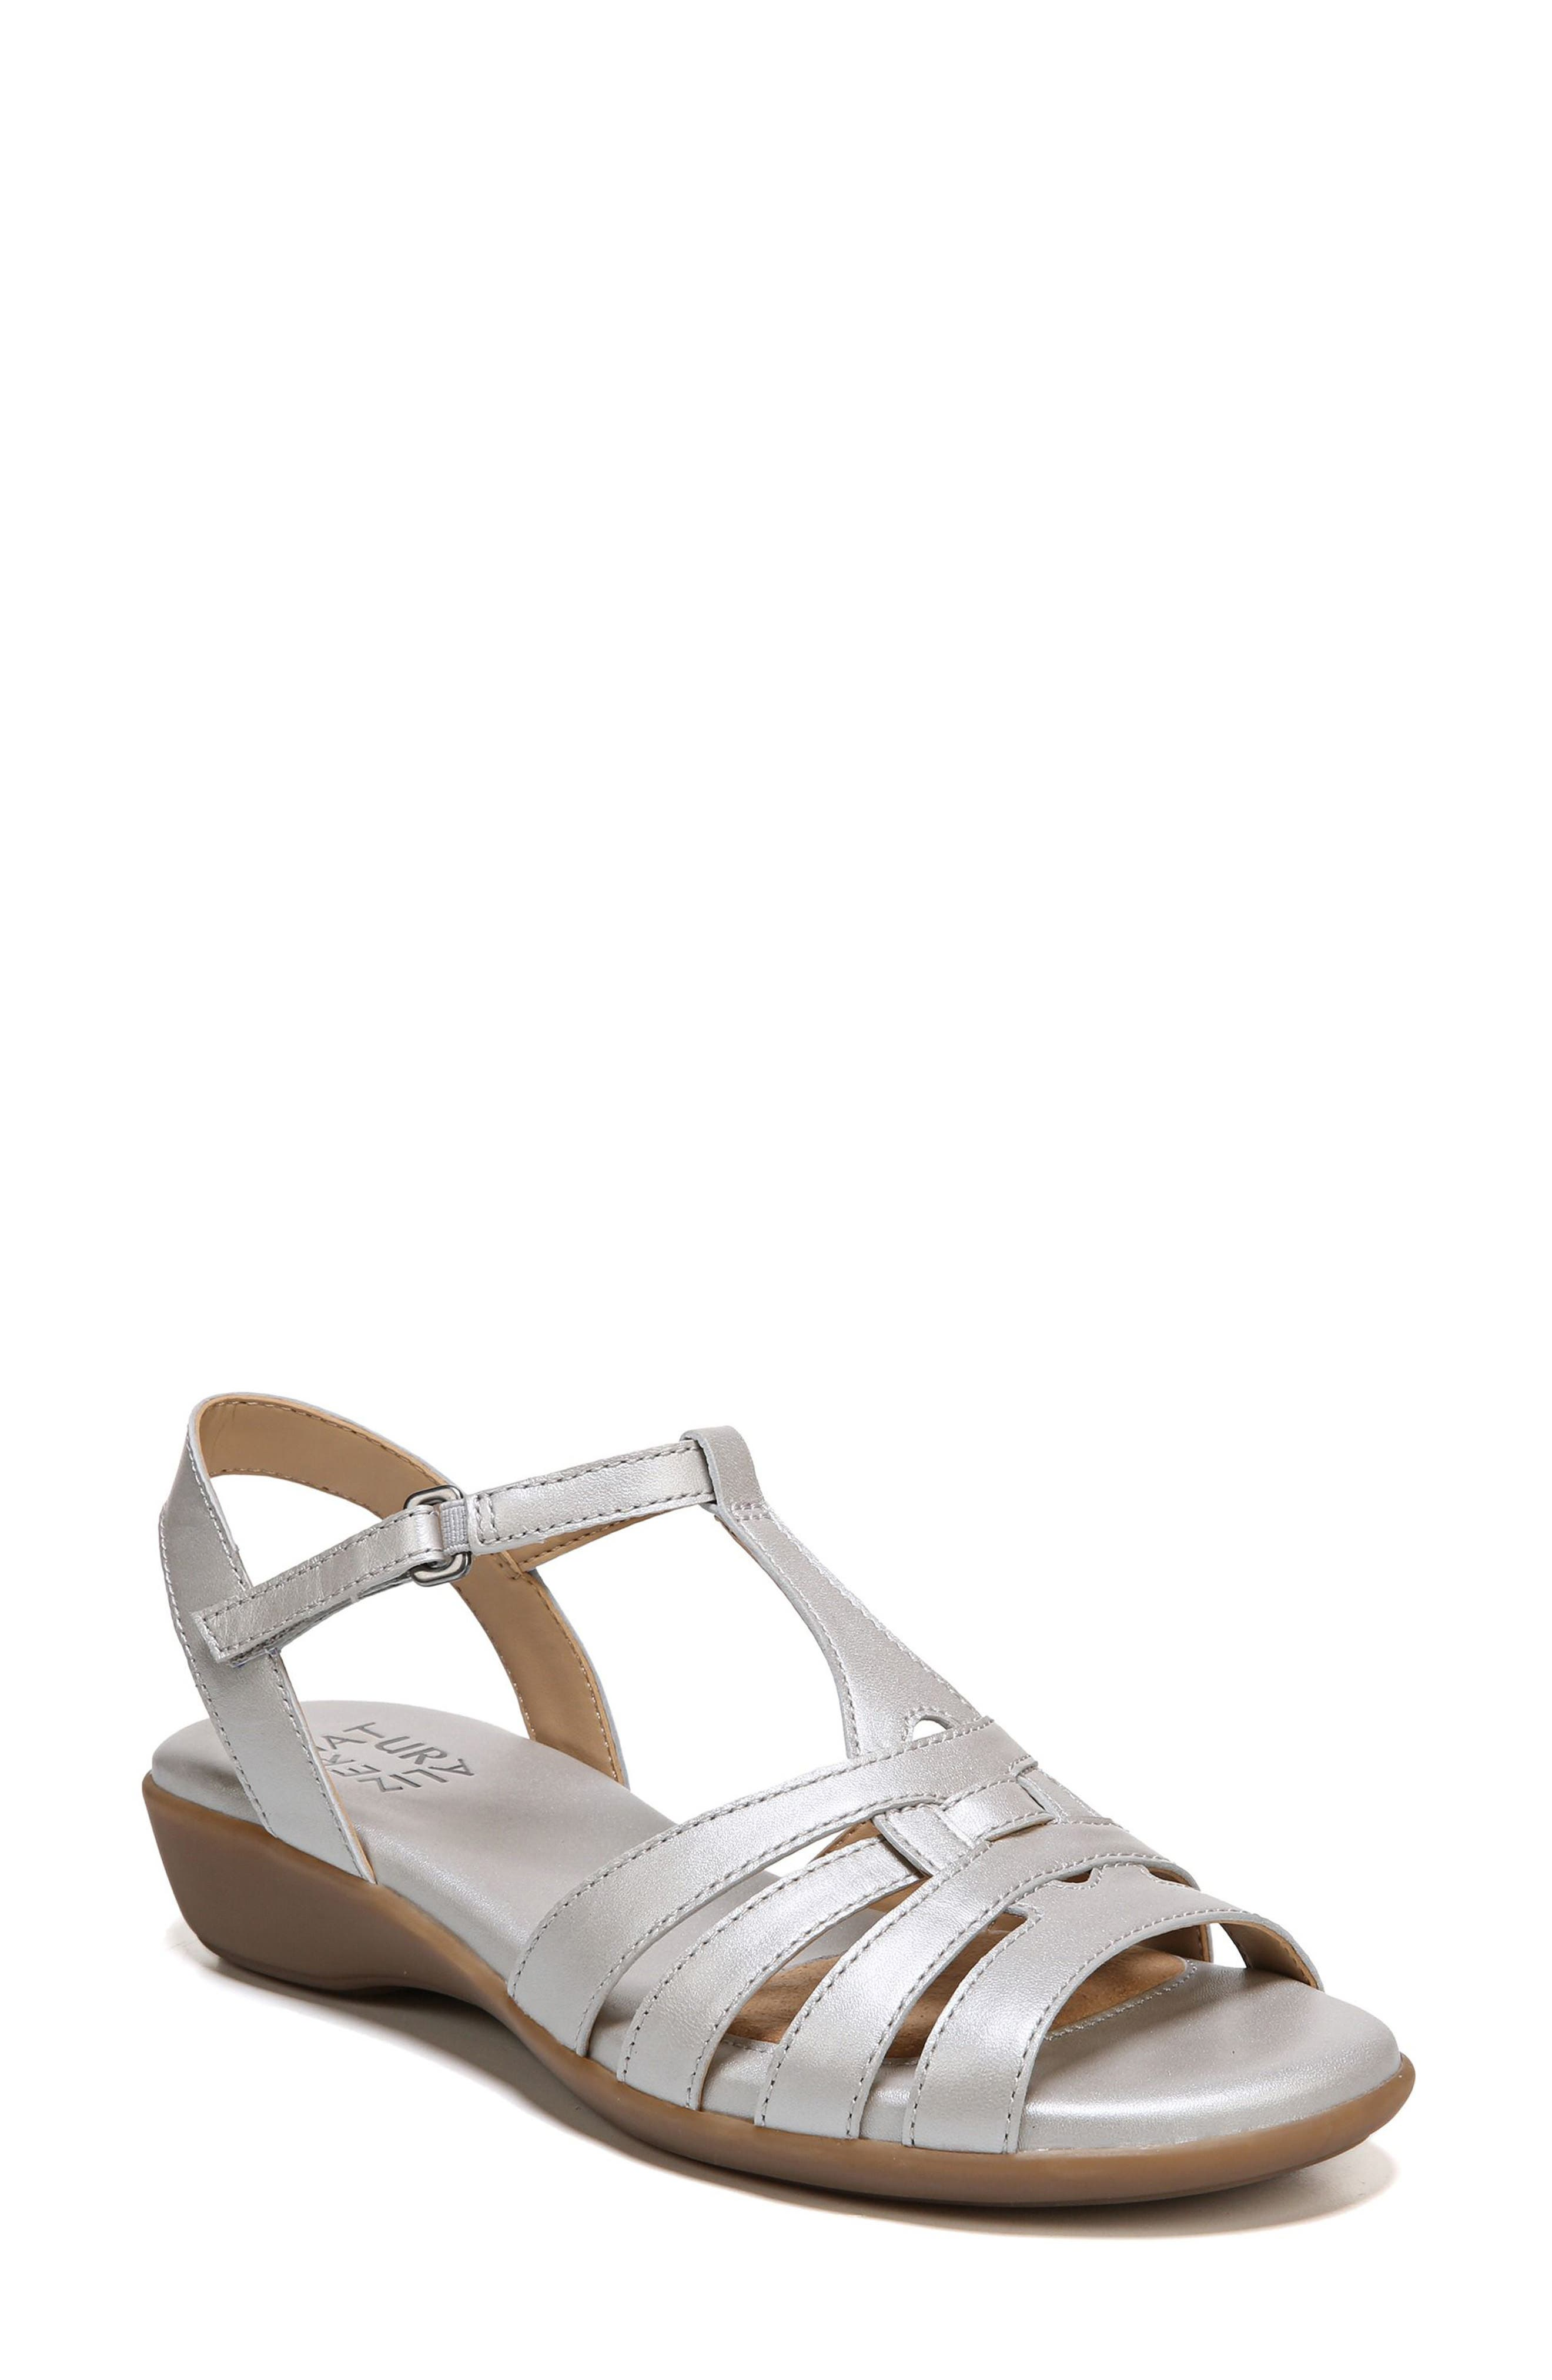 Main Image - Naturalizer Nanci Sandal (Women)